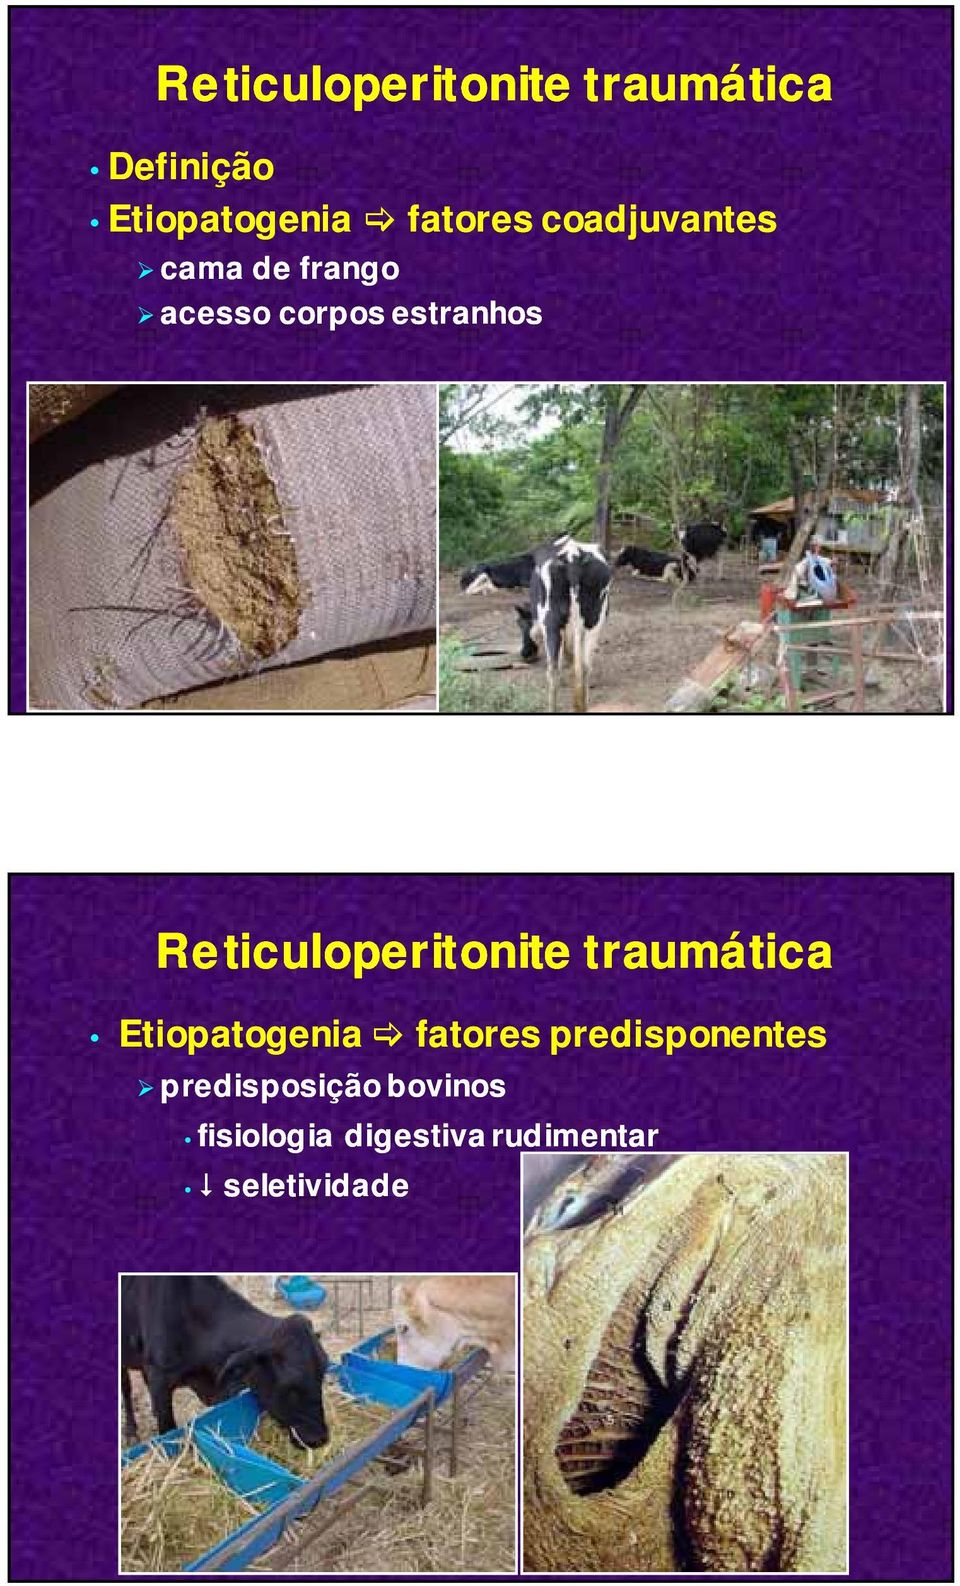 Reticuloperitonite traumática Etiopatogenia fatores